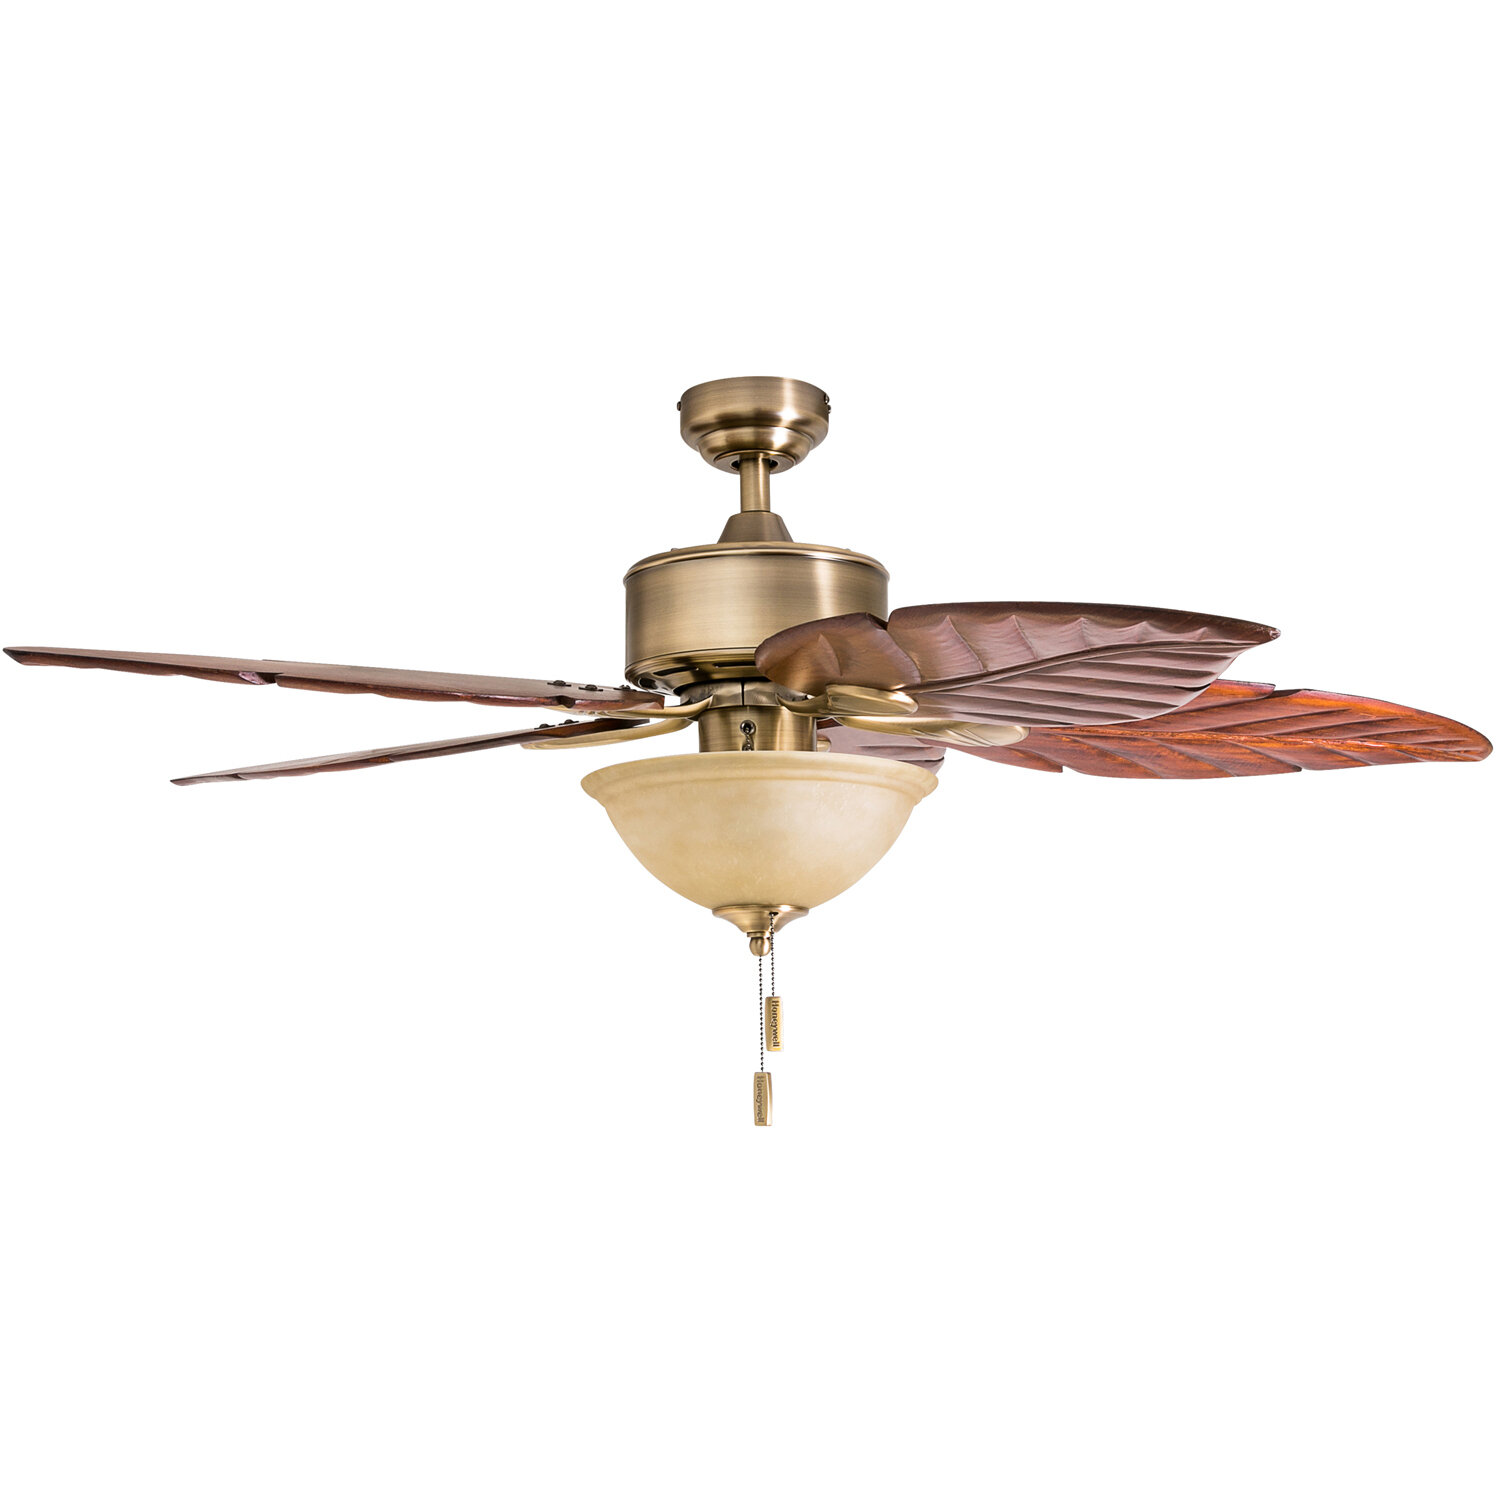 Charlton Home 52 Isanti 5 Blade Leaf Blade Ceiling Fan With Pull Chain And Light Kit Included Reviews Wayfair